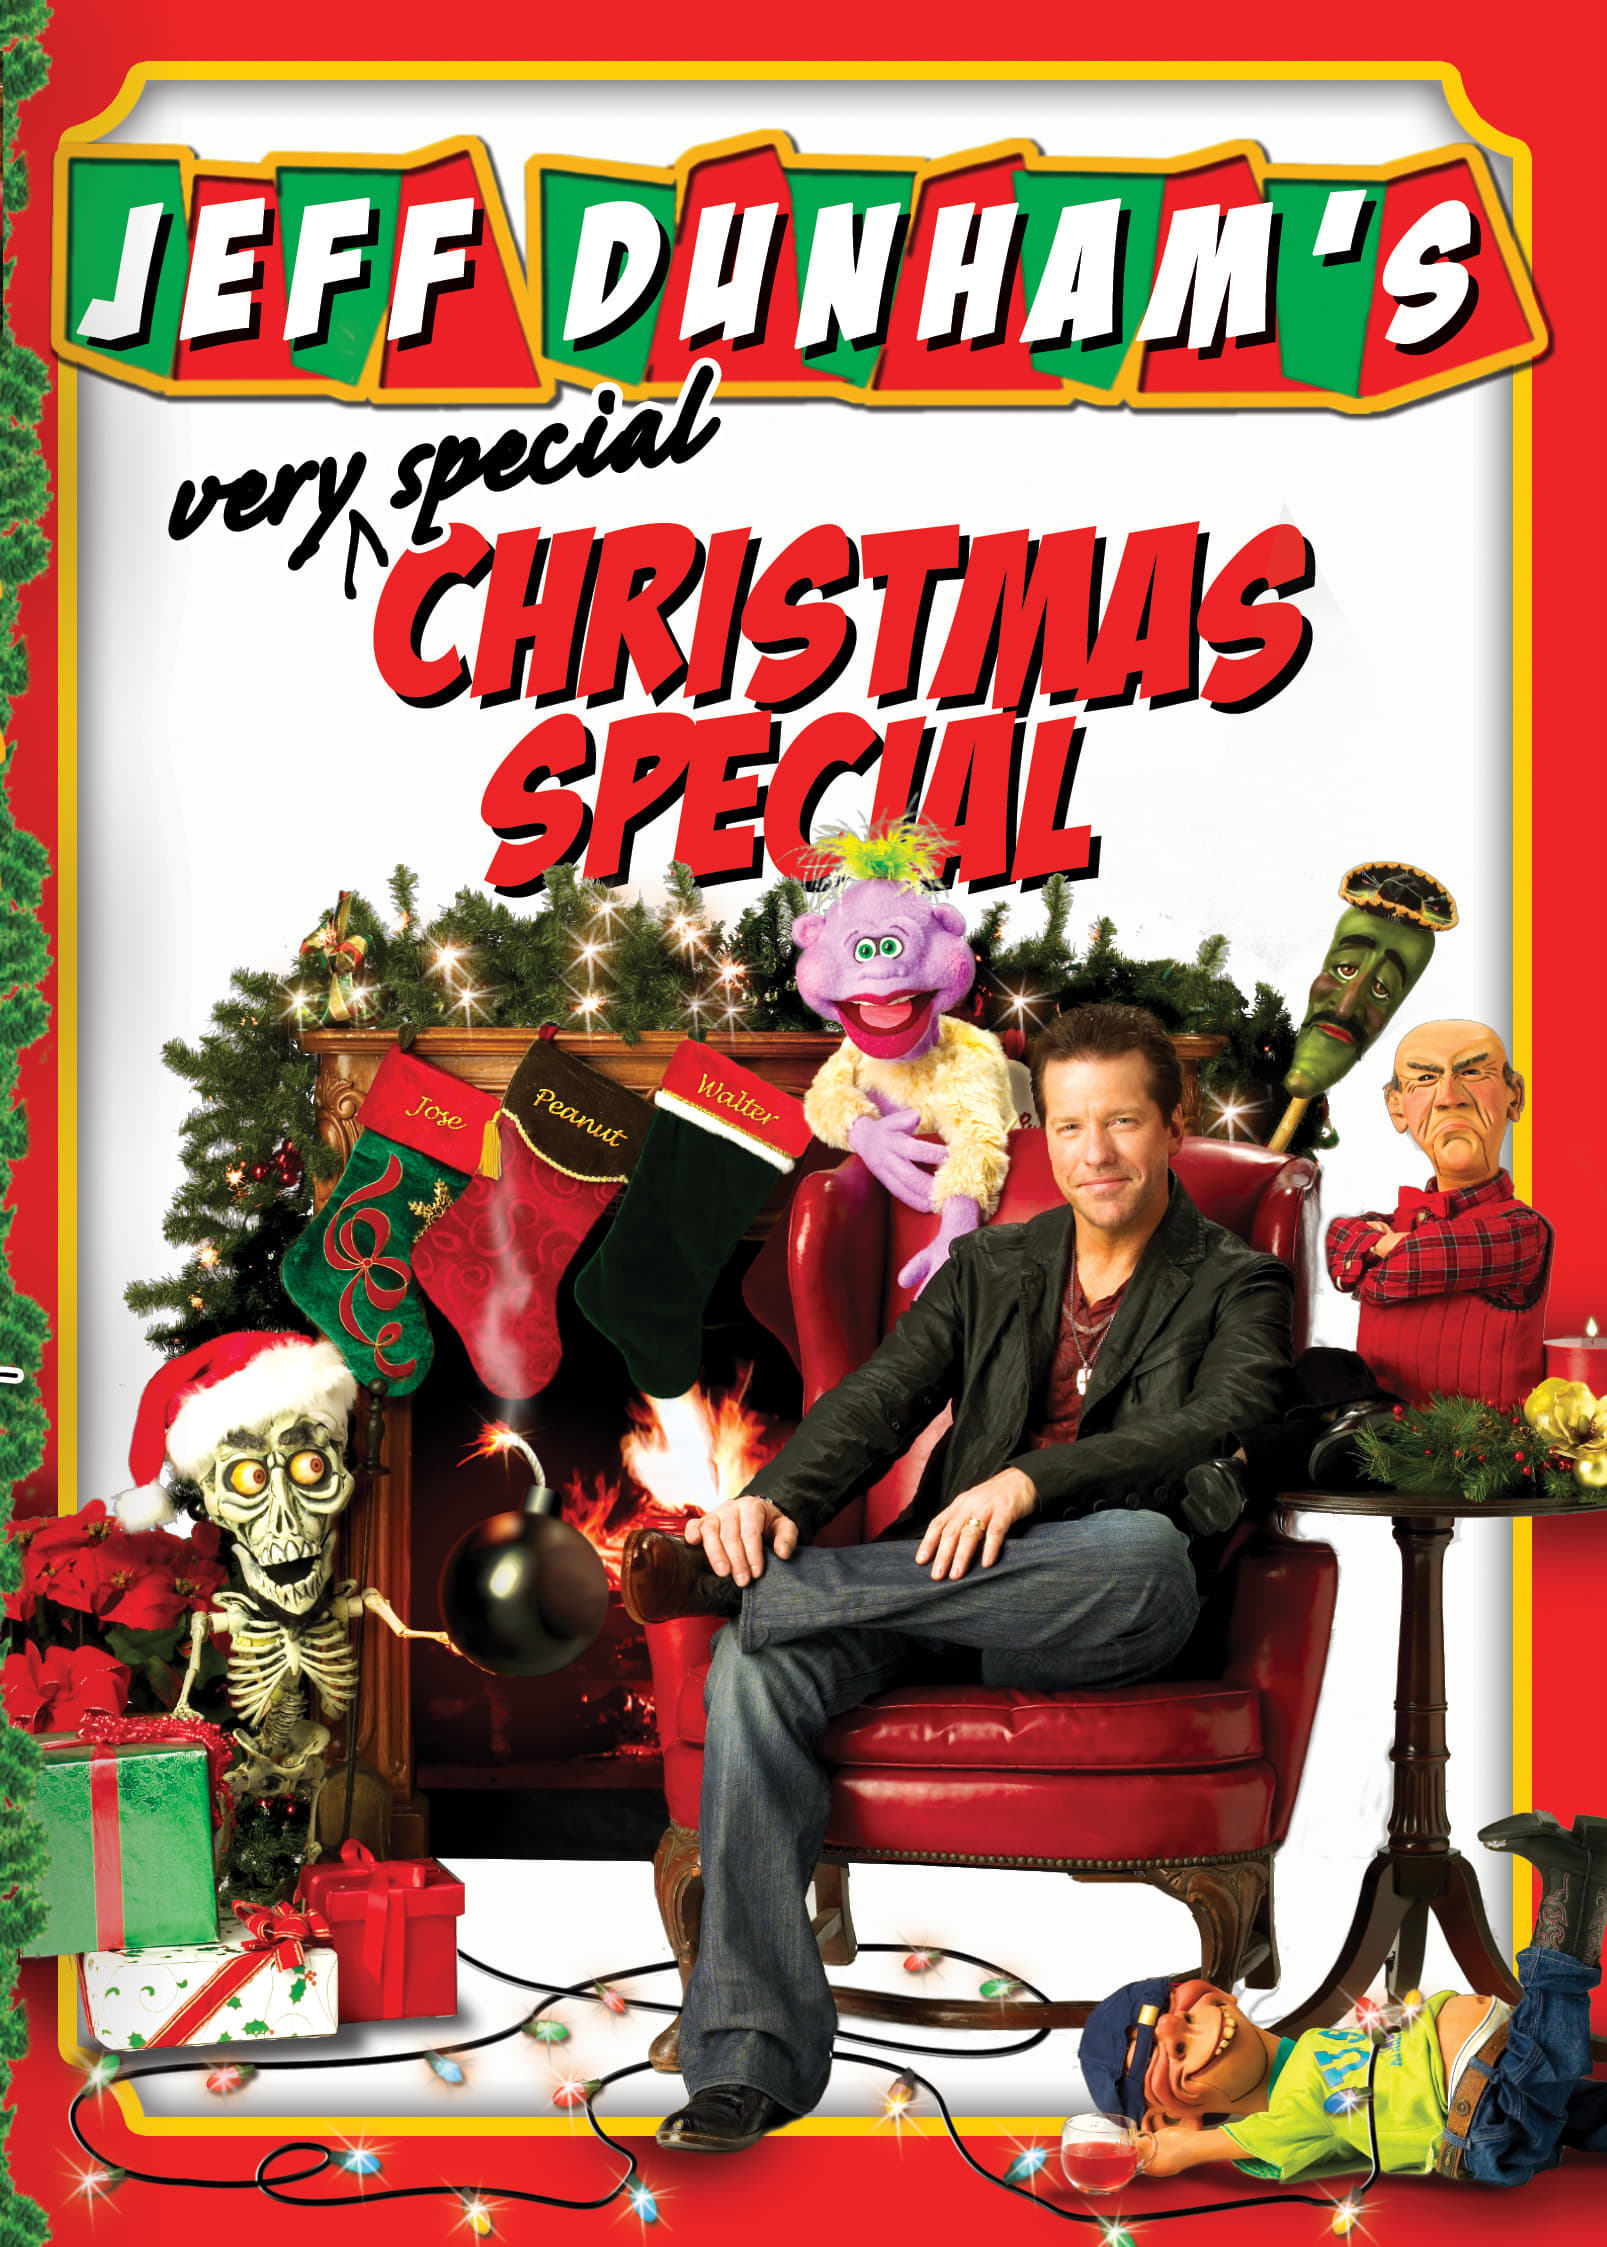 Watch Jeff Dunham: Jeff Dunham's Very Special Christmas Special online